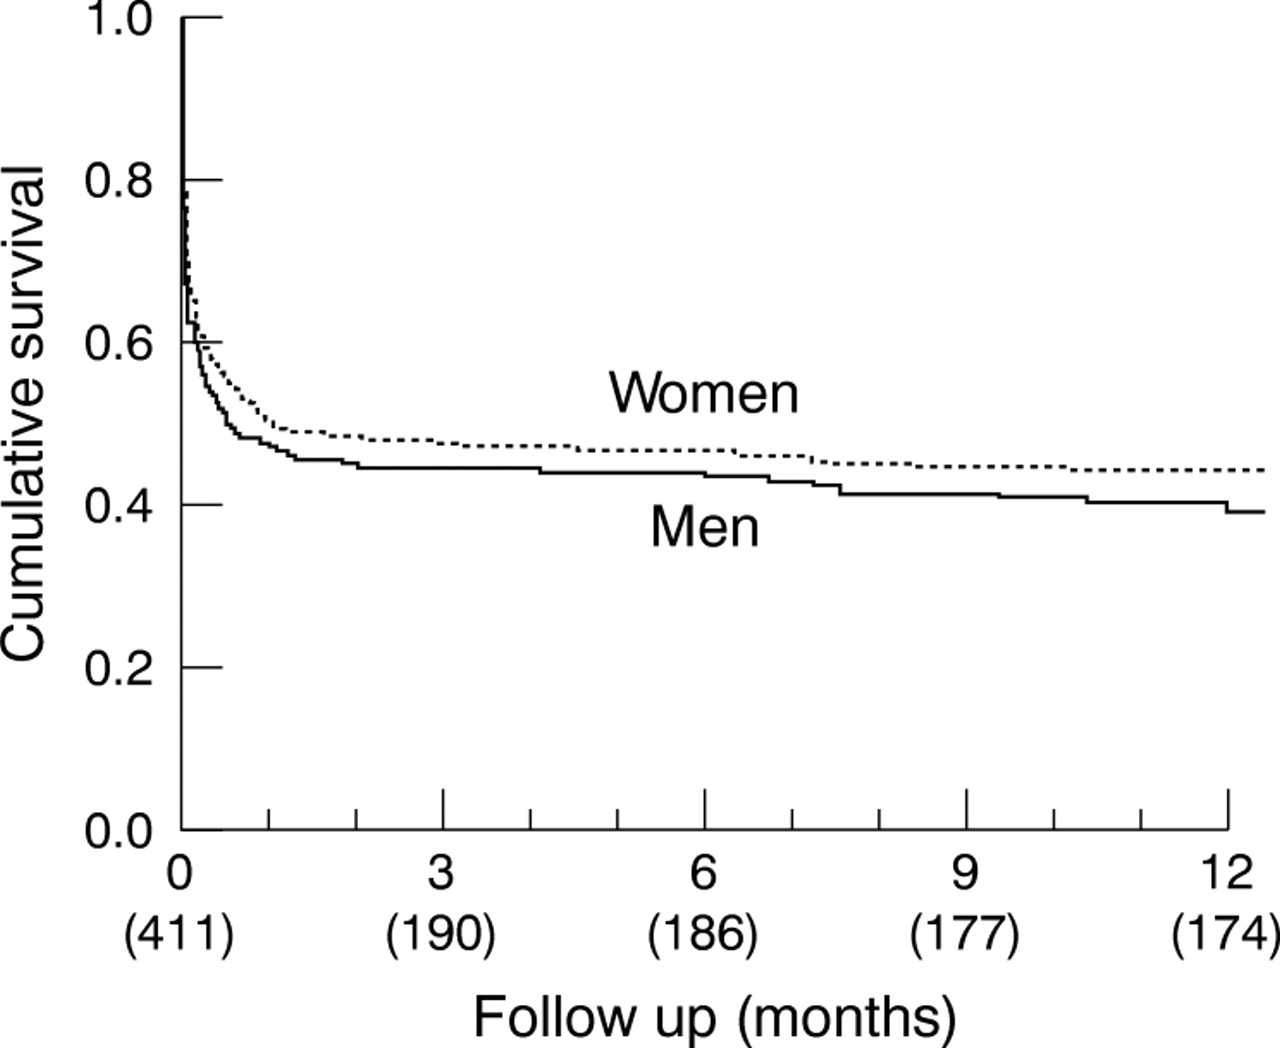 ... of 12 month survival, by sex. Numbers of patients in brackets.